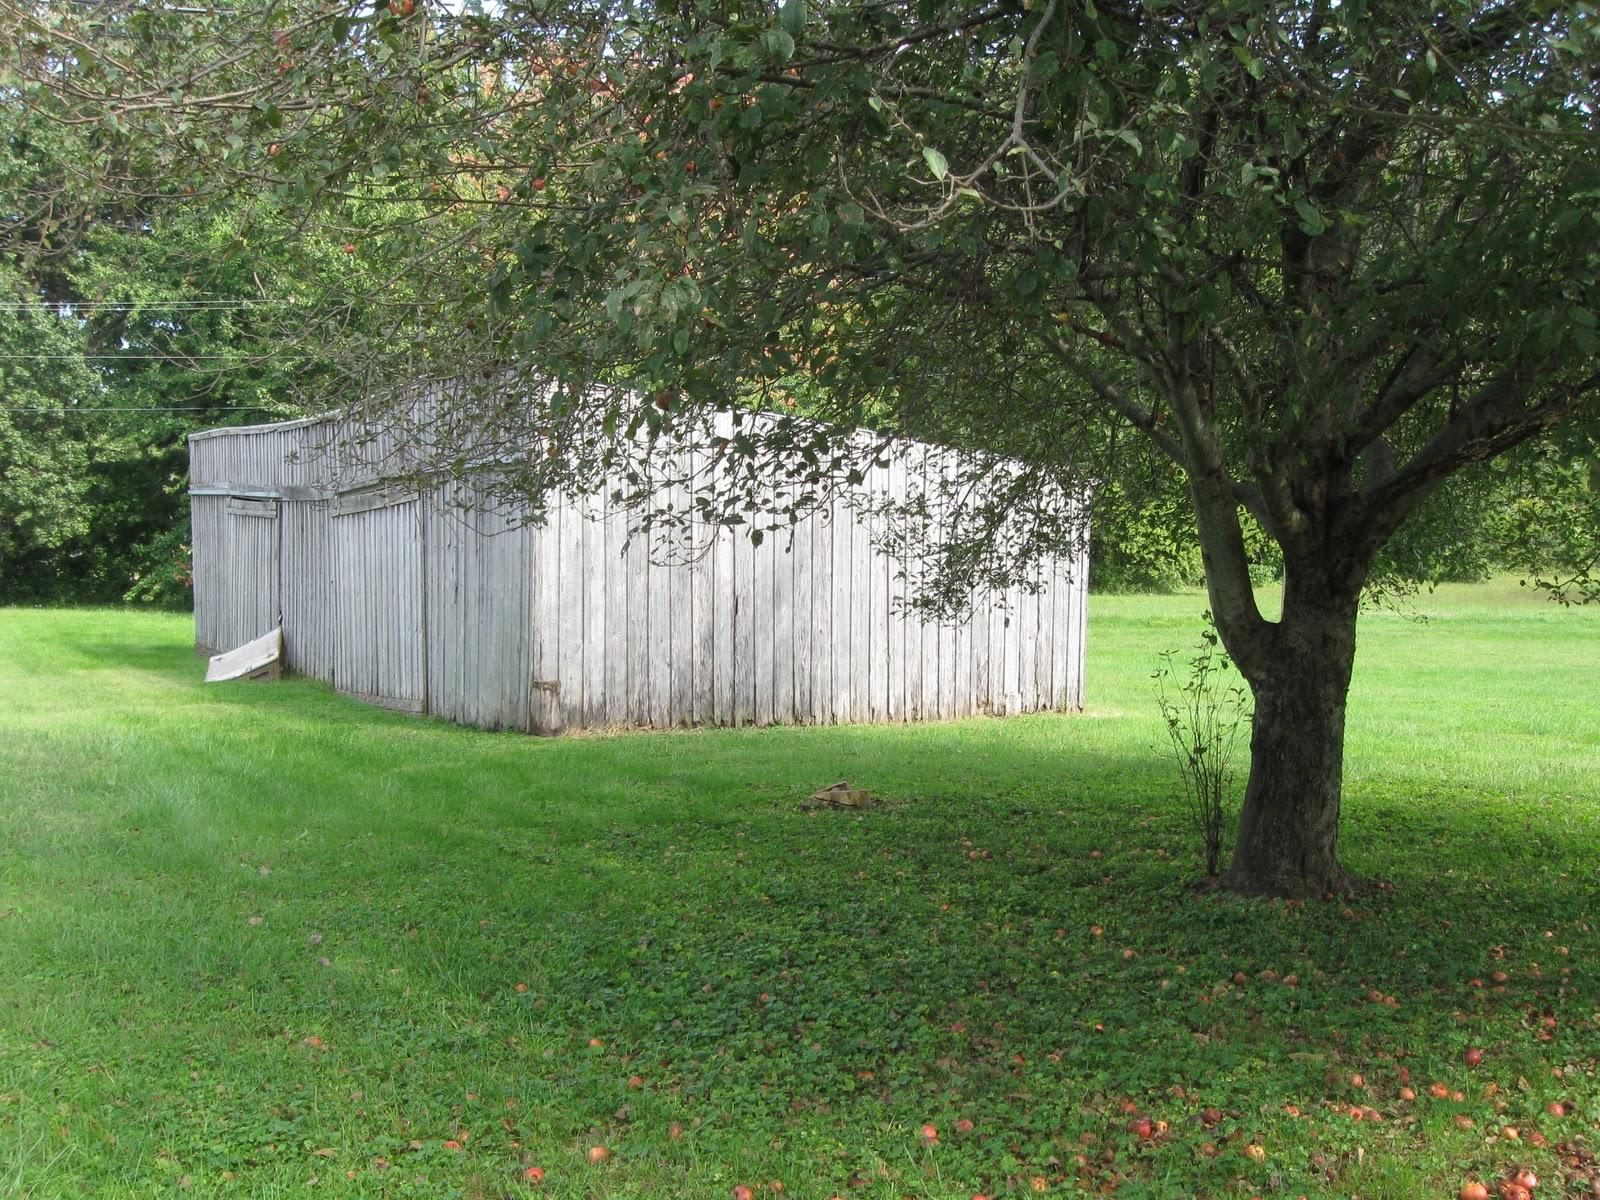 sitting together the apple tree and garage reminded me of how